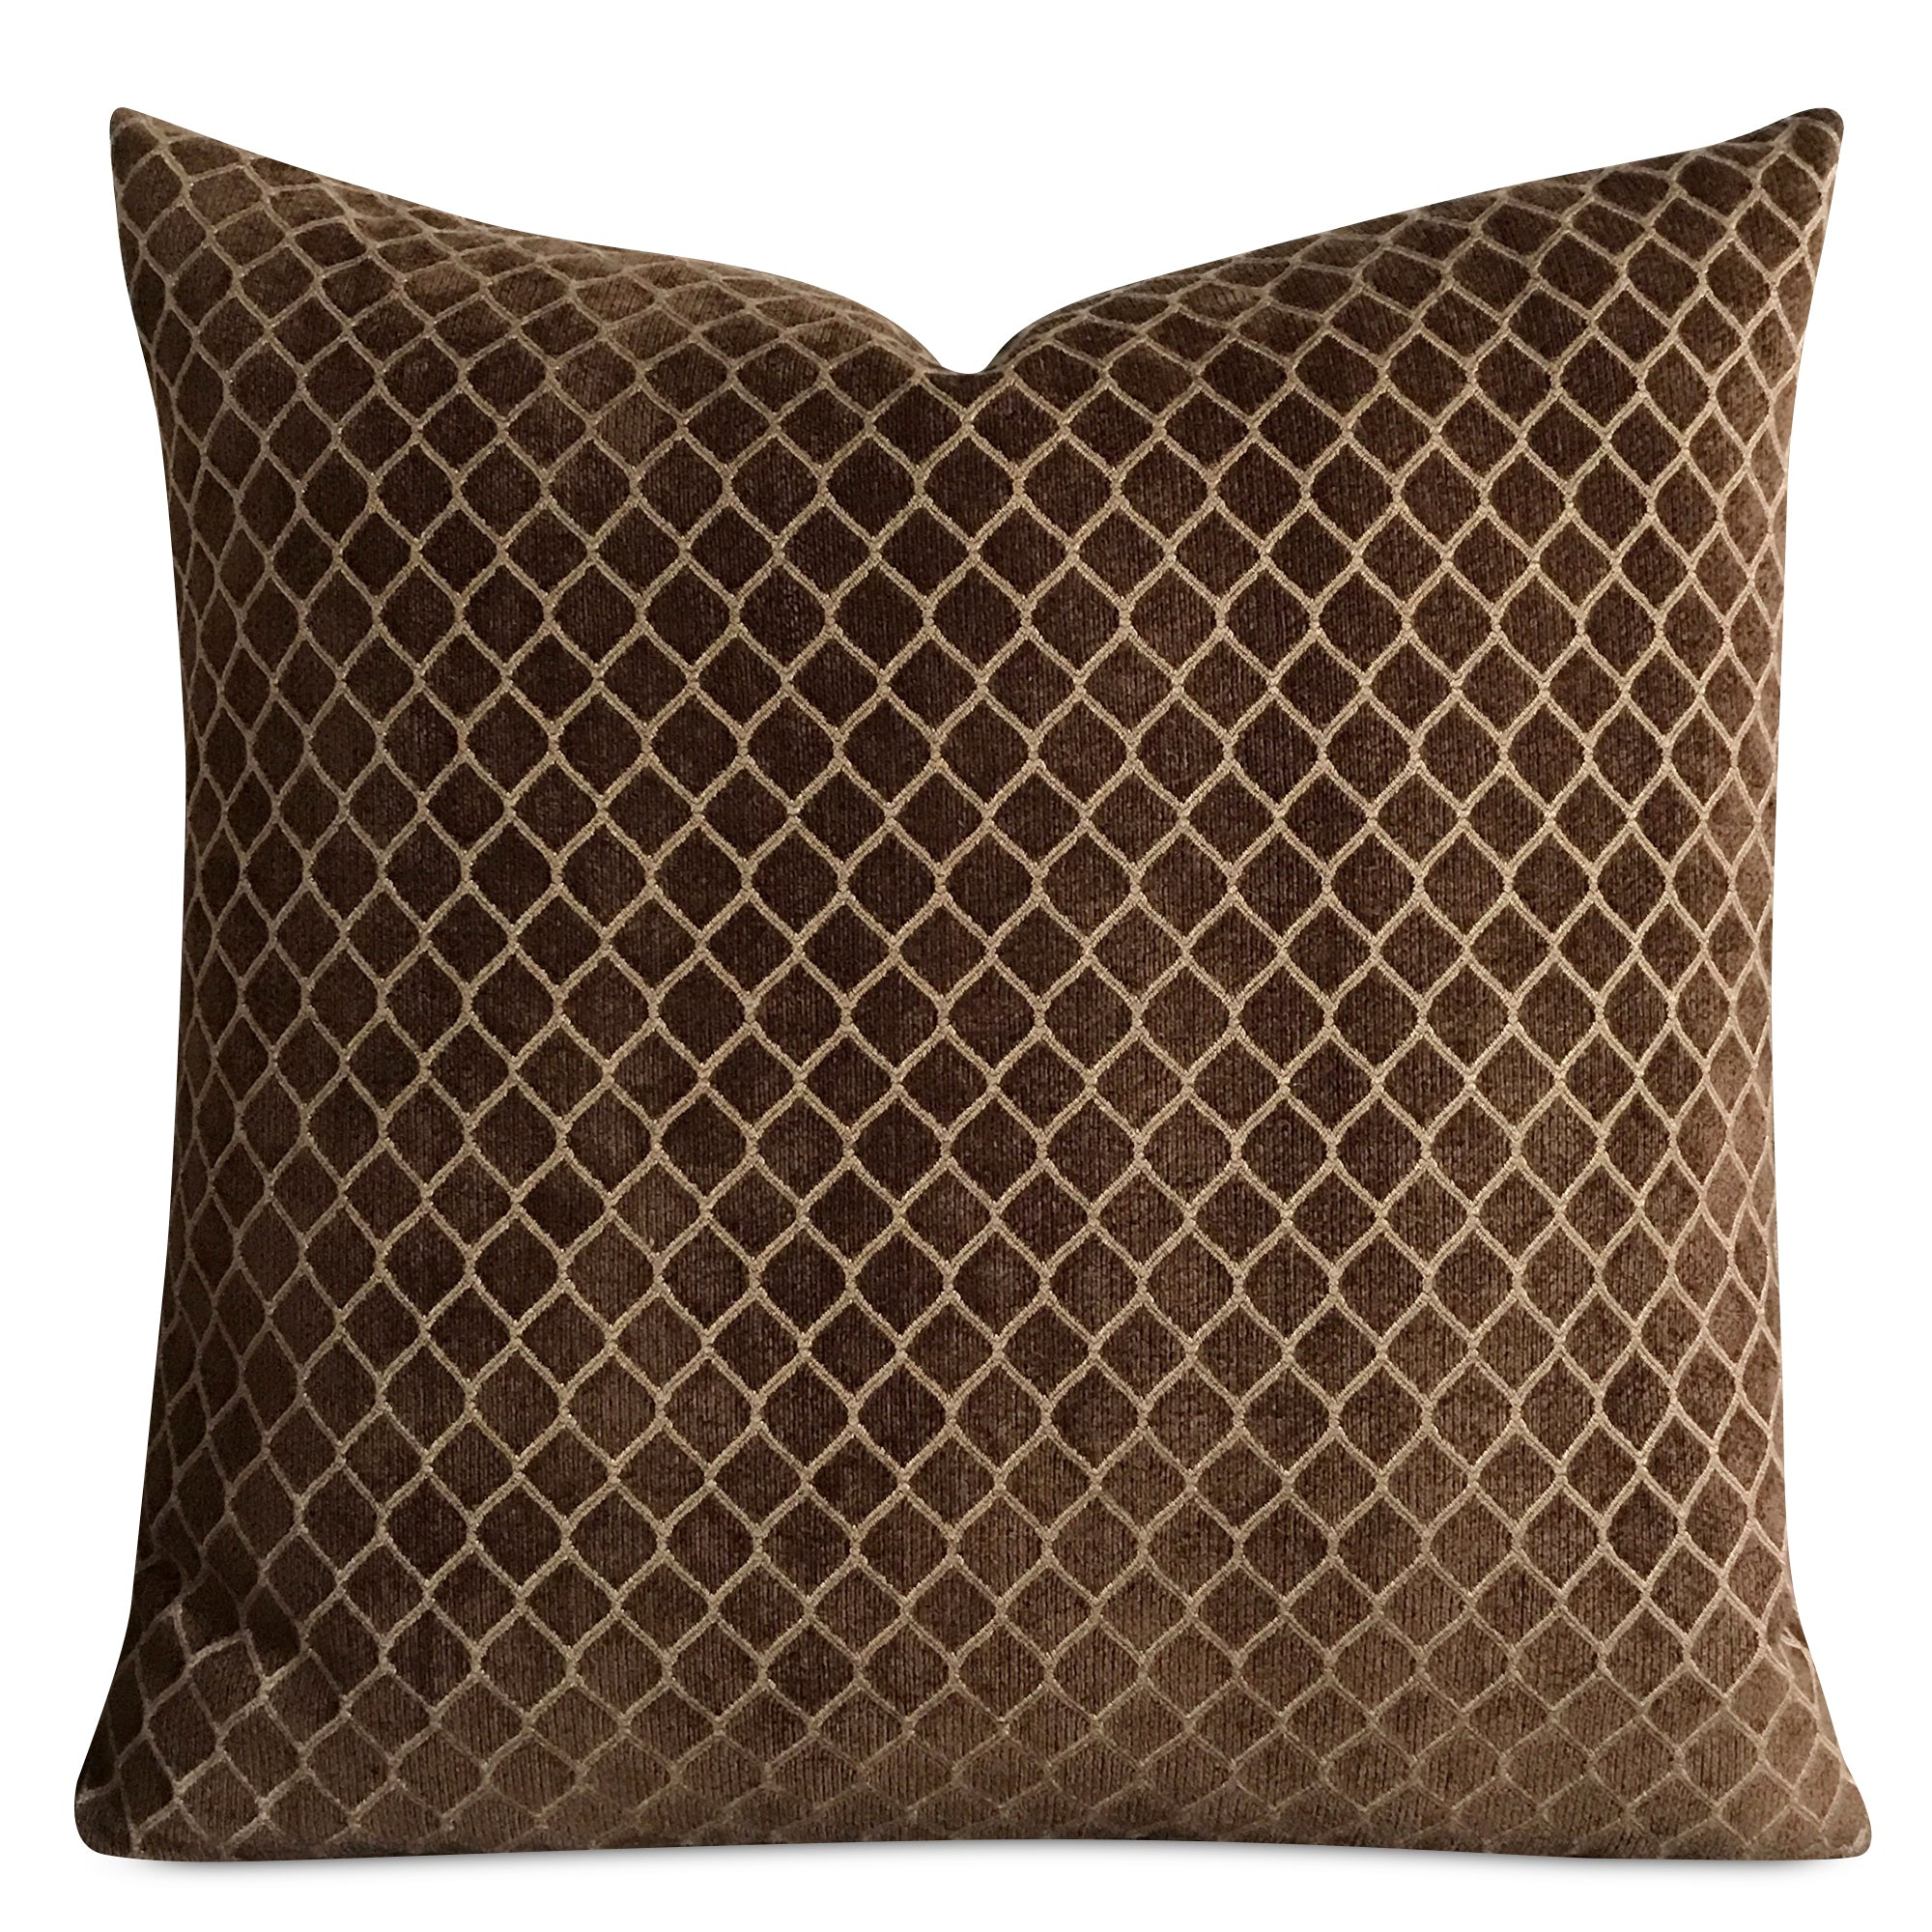 "18""x 18"" Brown Gold Corduroy Luxury Woven Decorative Pillow Cover ..."